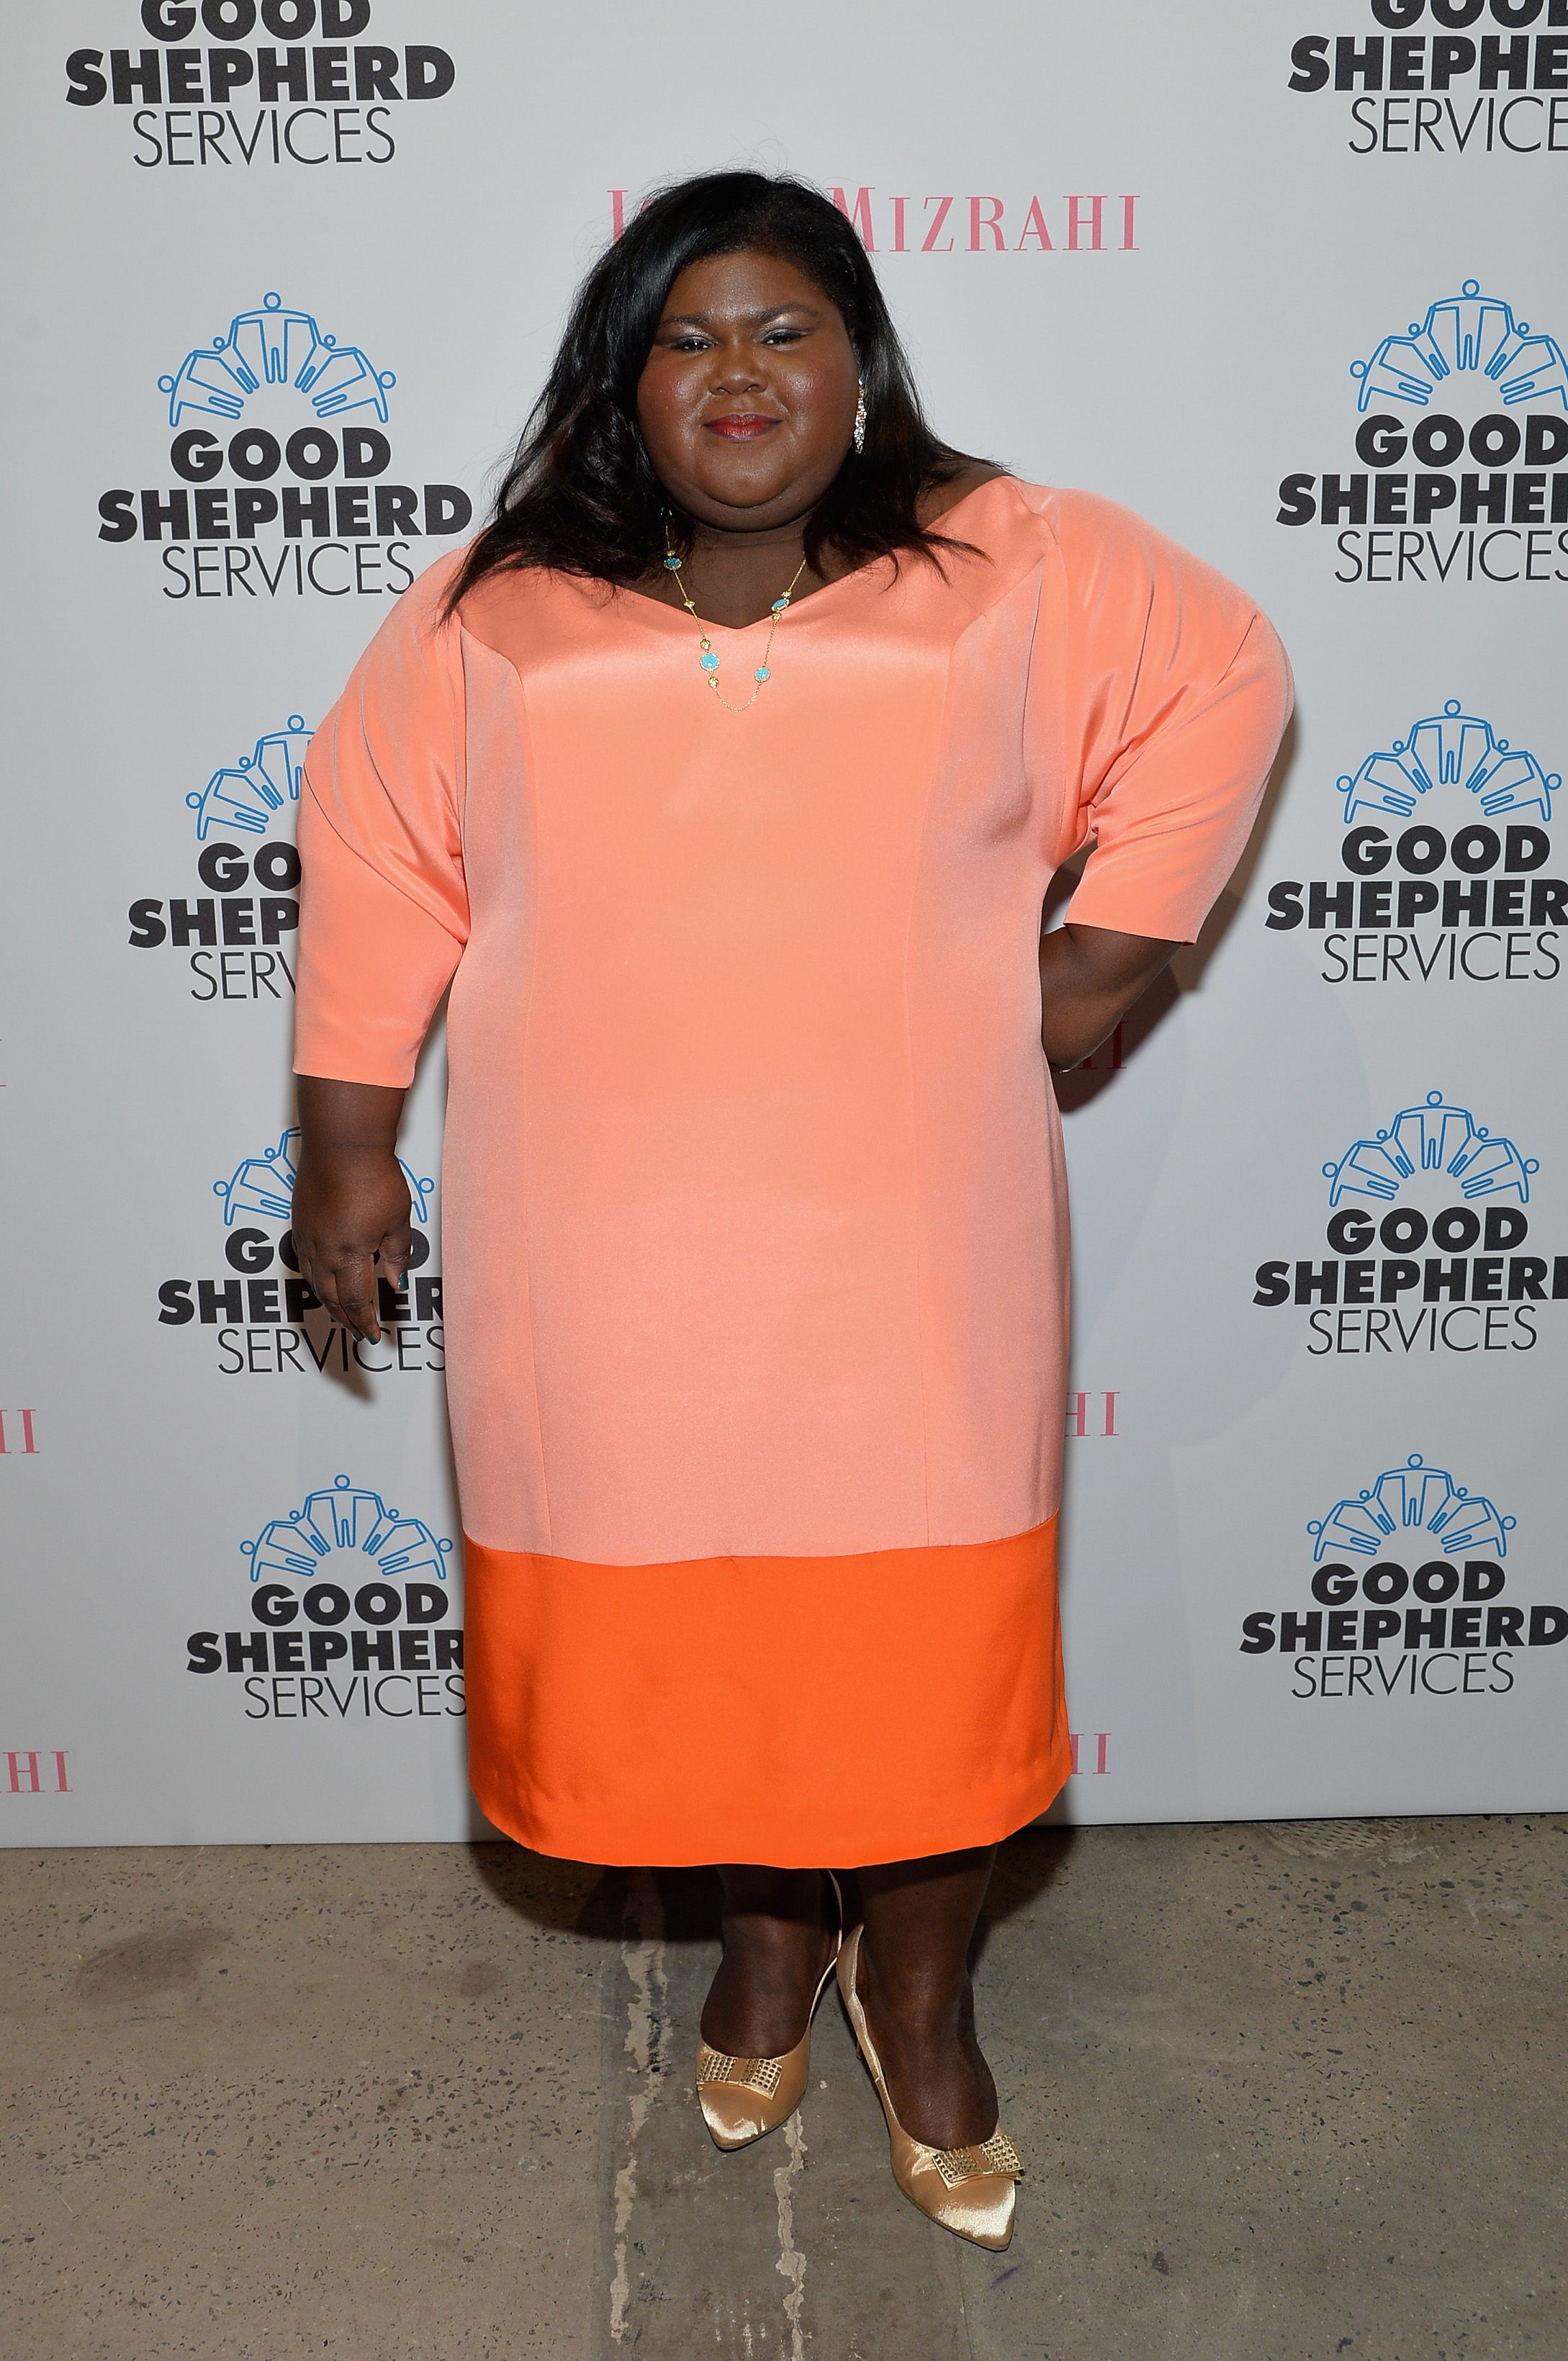 Gabourey Sidibe during the Good Shepherd Services Spring Party in New York City on April 24, 2014. | Source: Getty Images